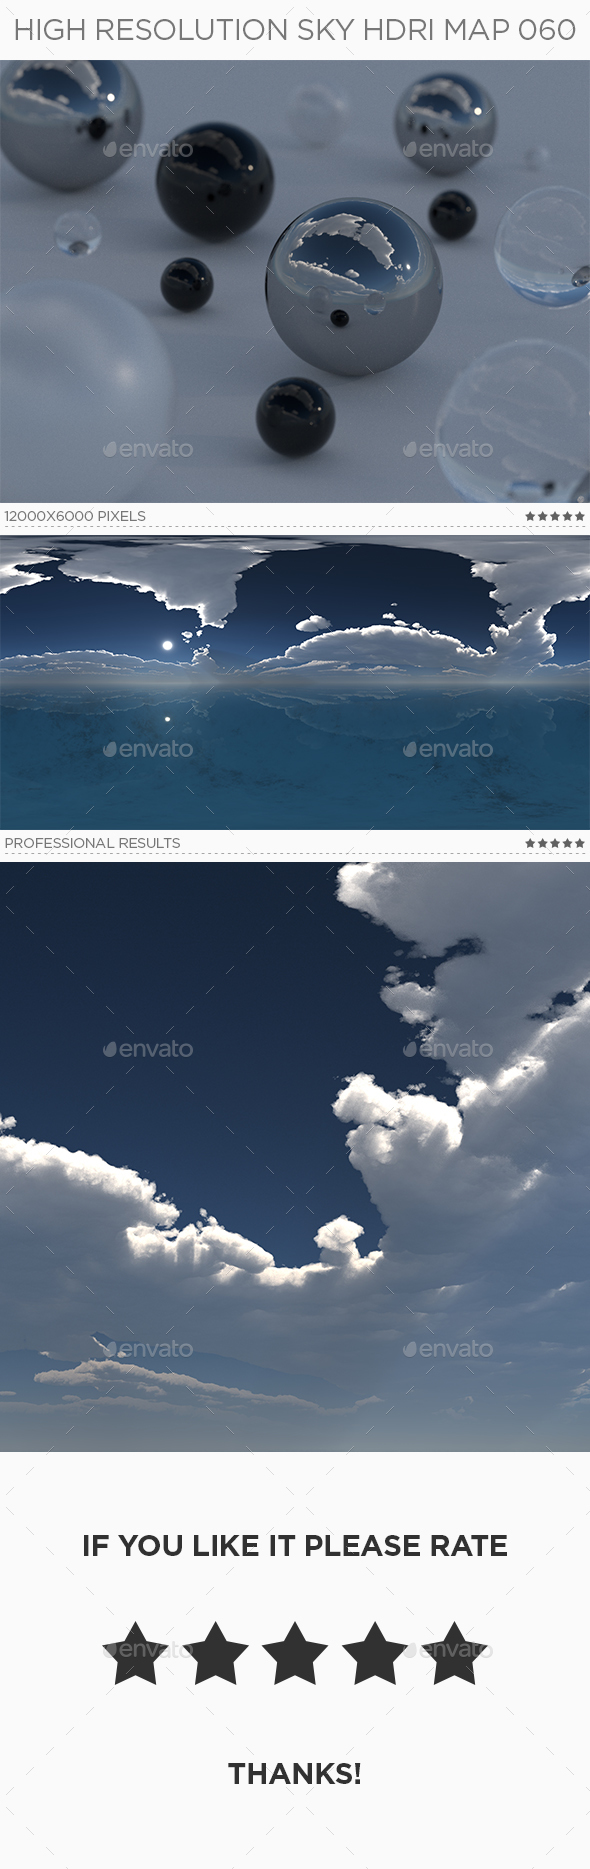 High Resolution Sky HDRi Map 060 - 3DOcean Item for Sale